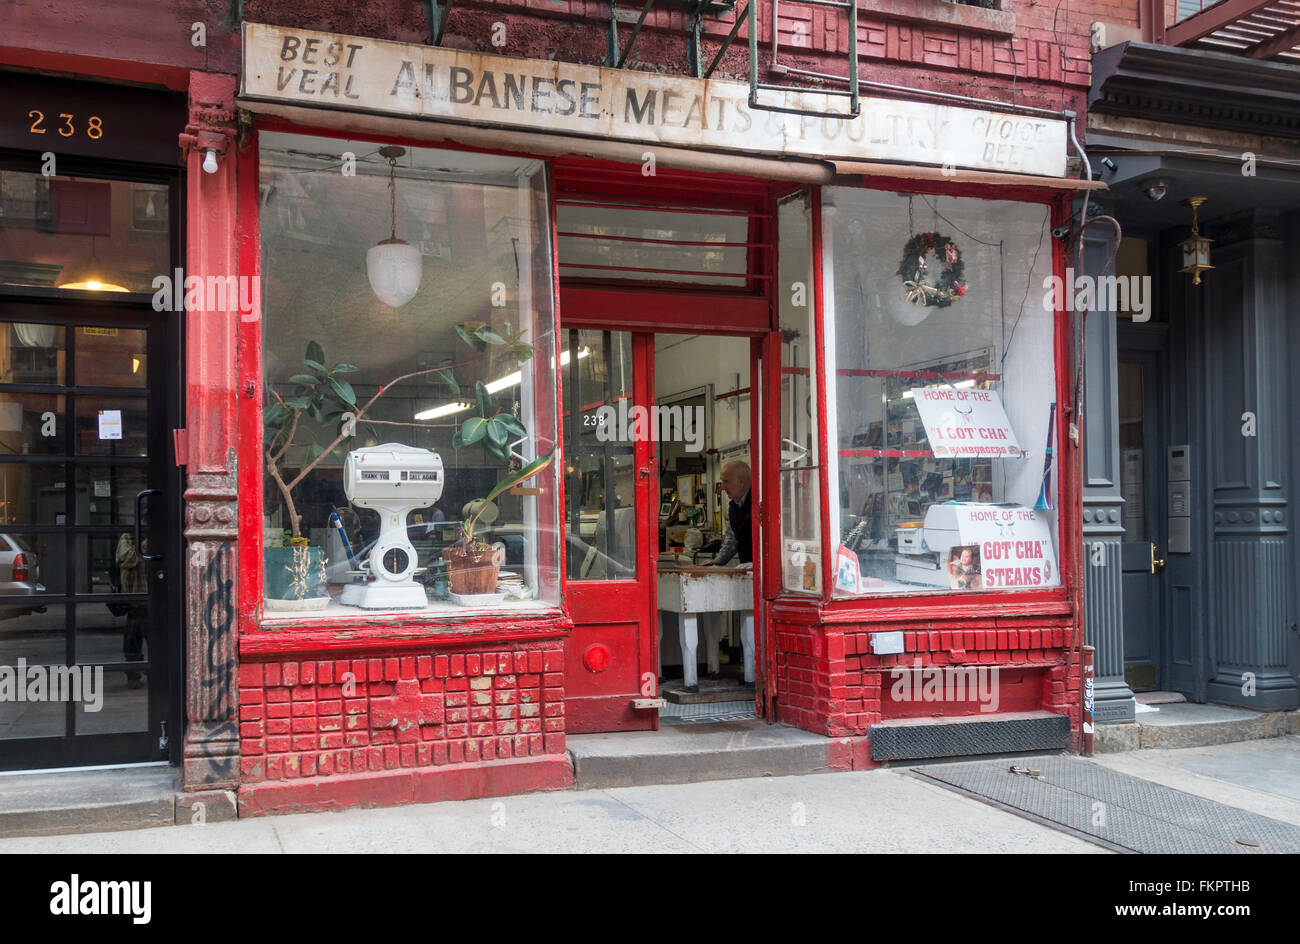 Albanese Meat & Poultry, an old butcher shop in Little Italy in New York City - Stock Image